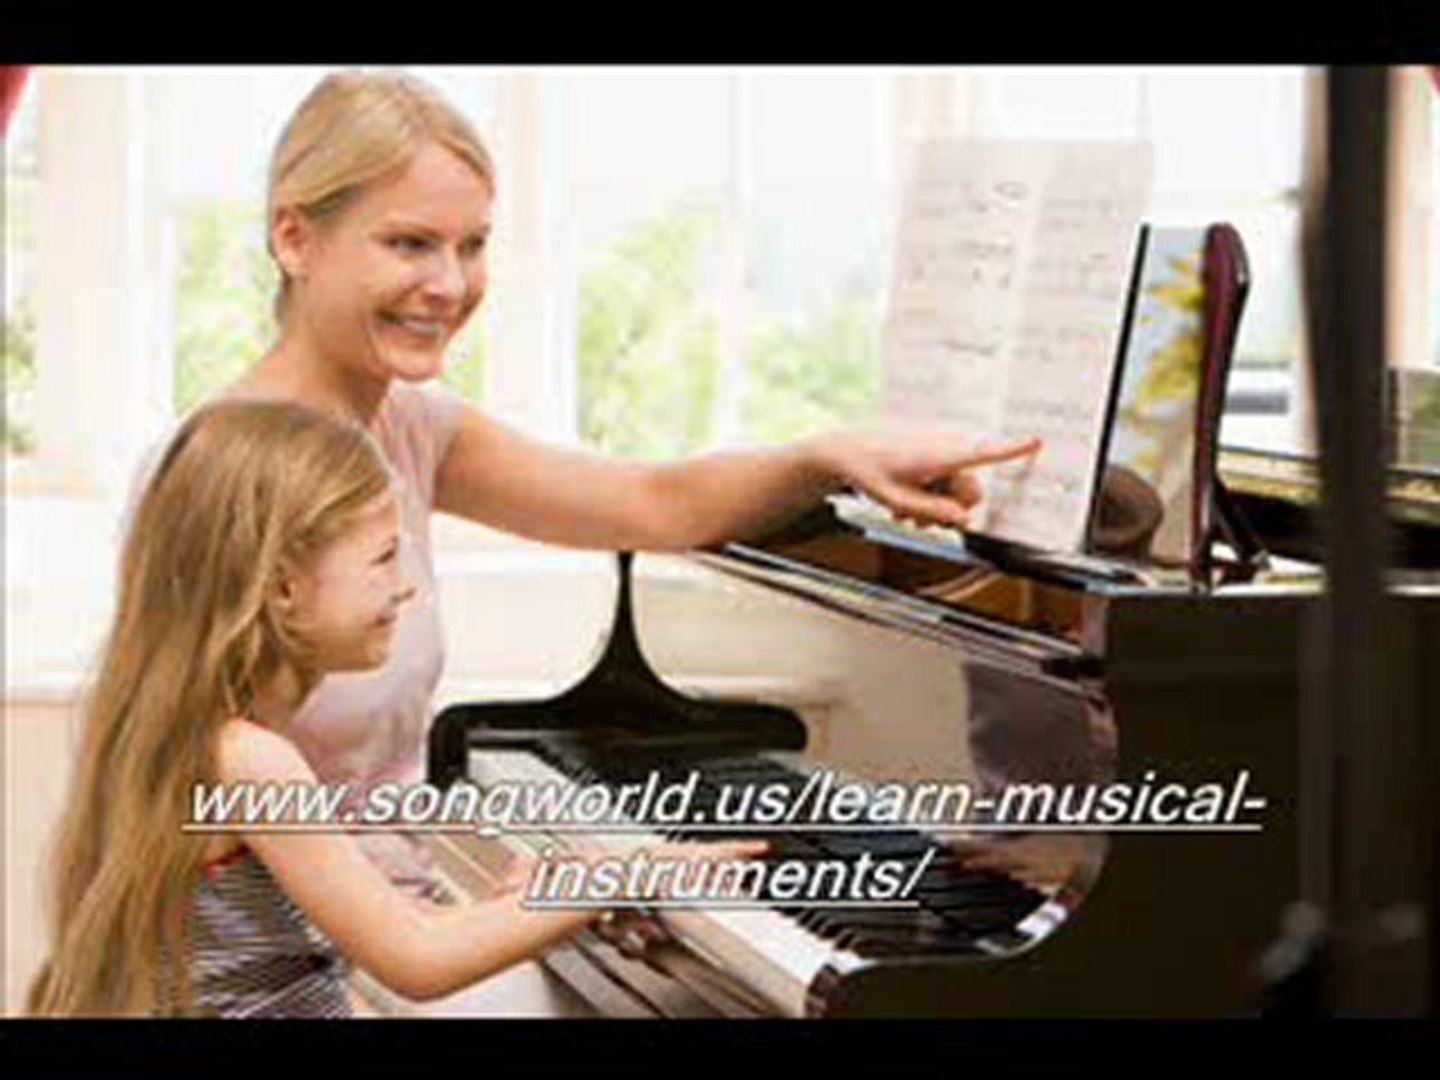 Learn Piano in 1 year - Major Chords without black notes - Week 2